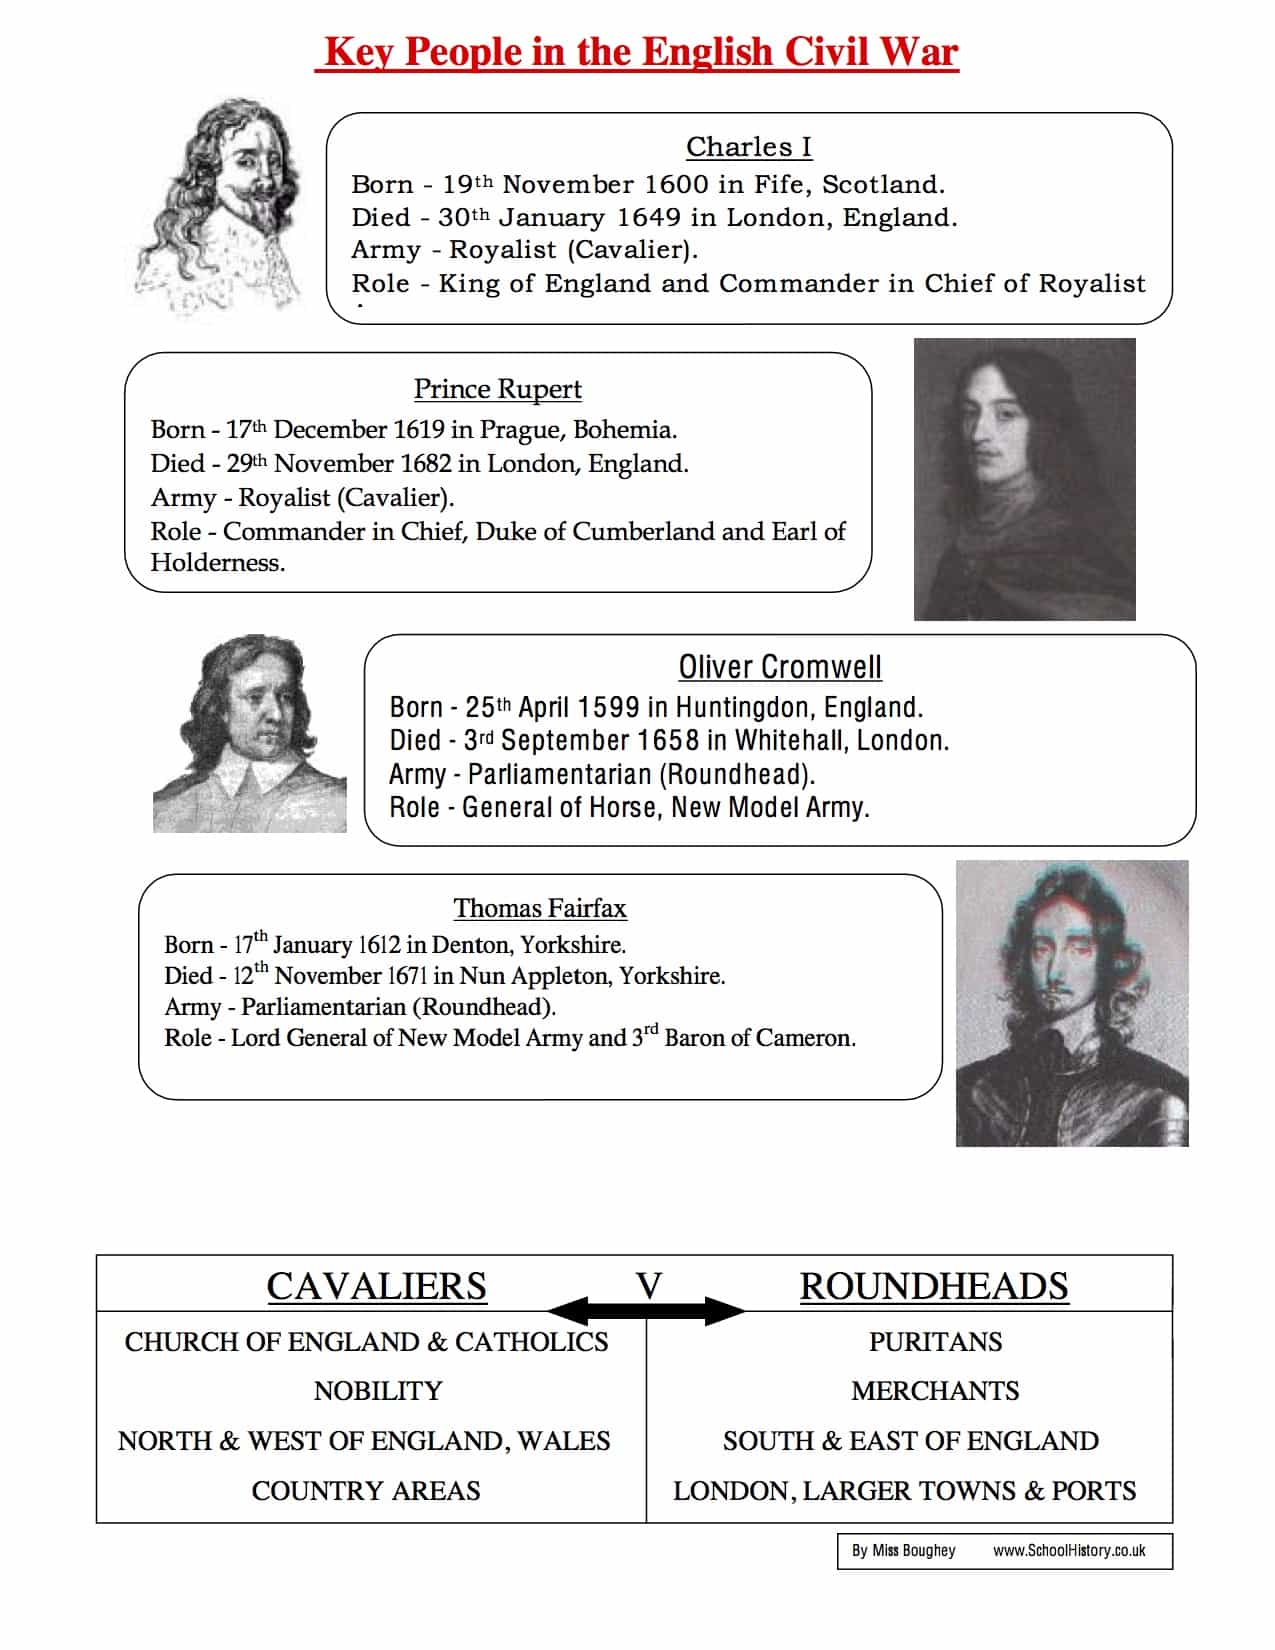 Key Events In The English Civil War